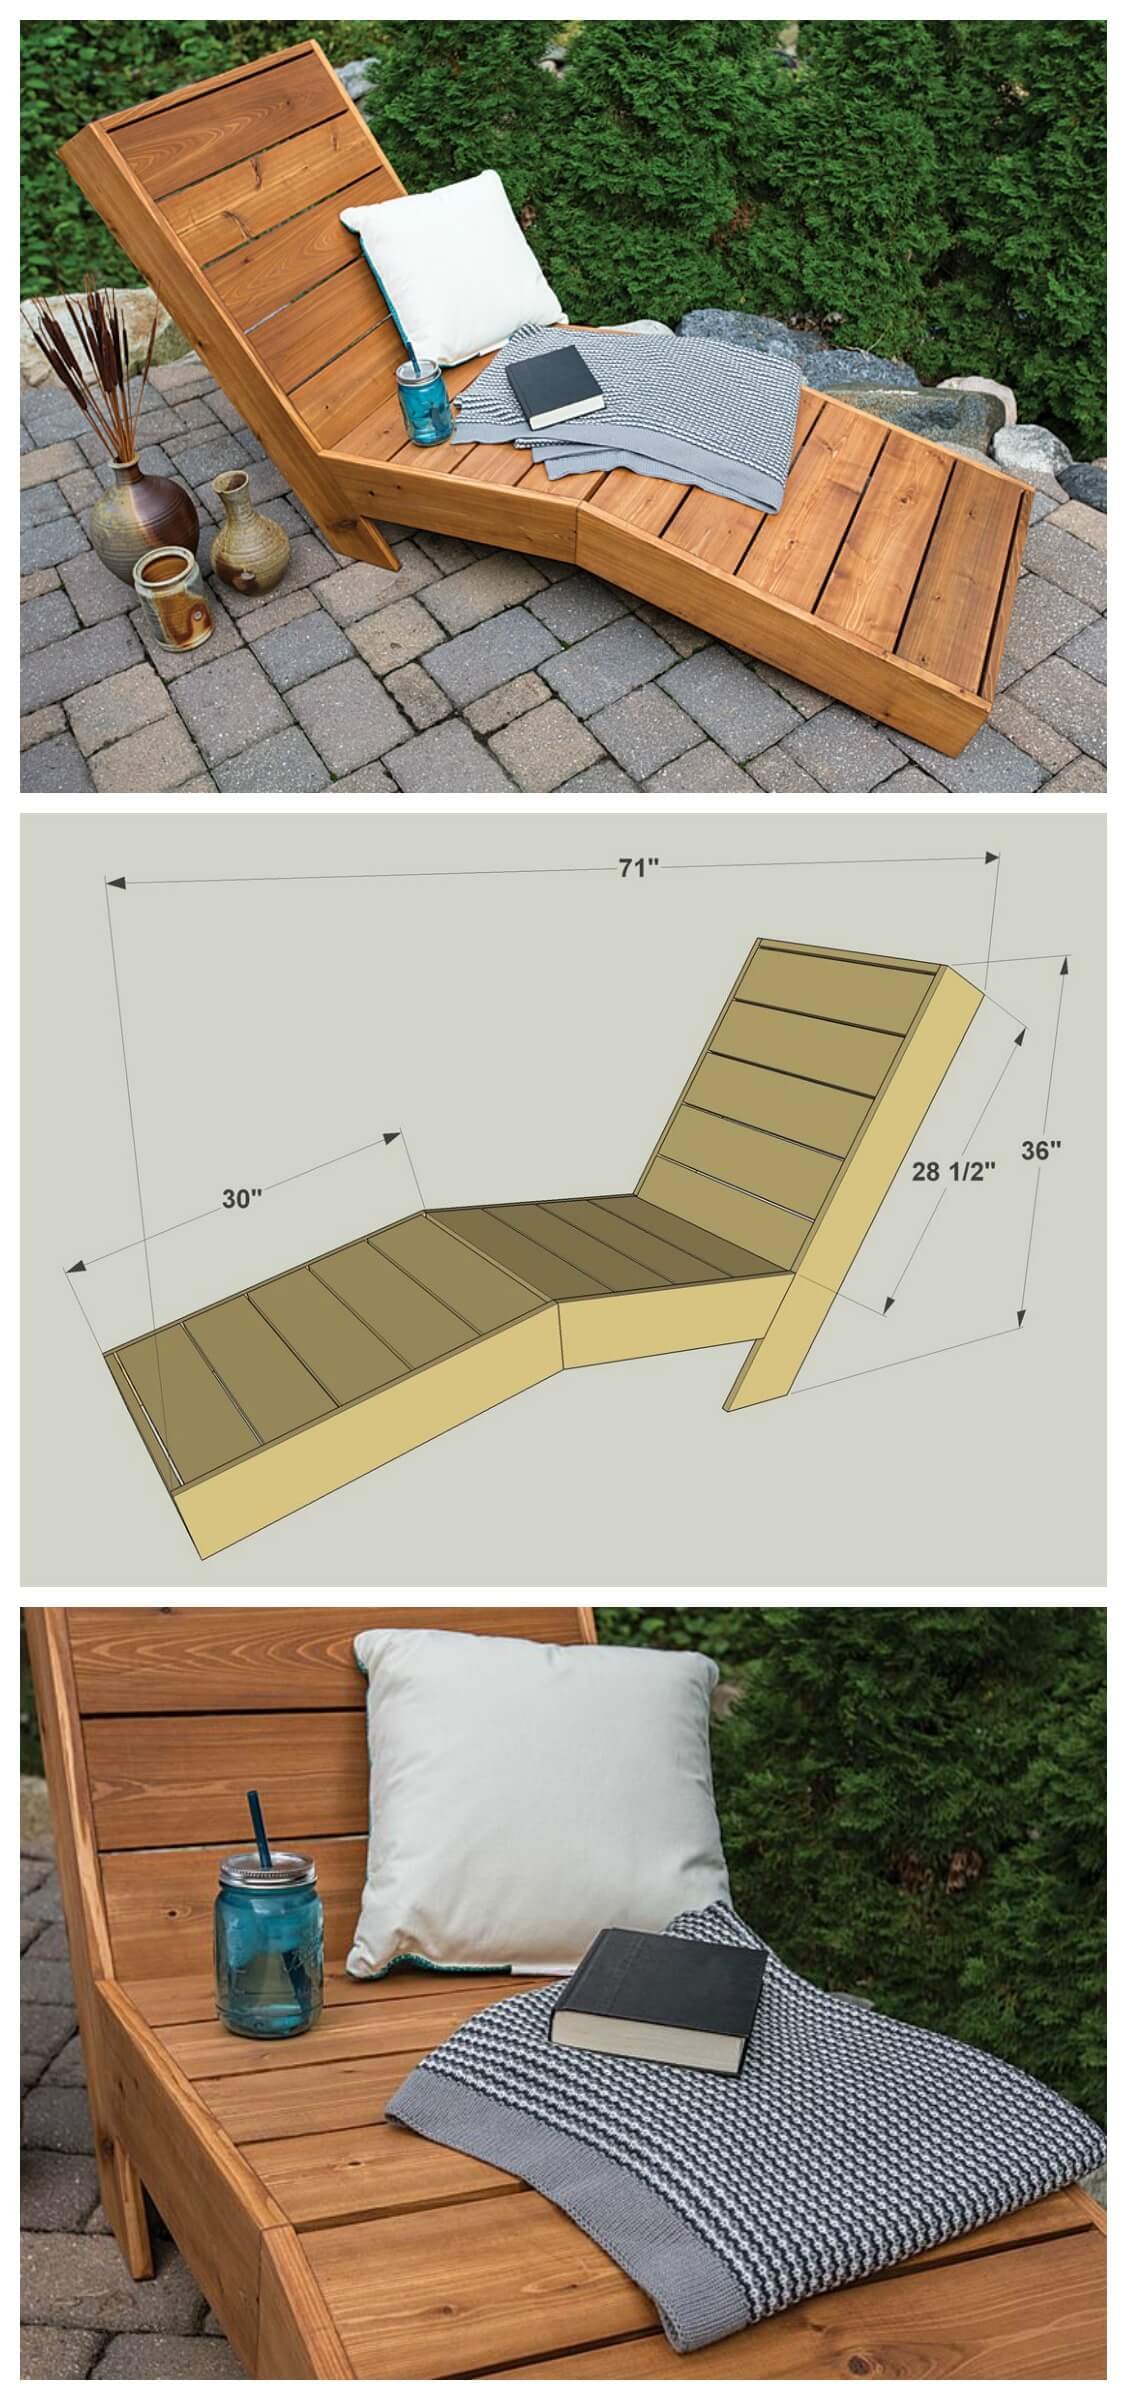 29 best diy outdoor furniture projects ideas and designs for Outdoor wood projects ideas